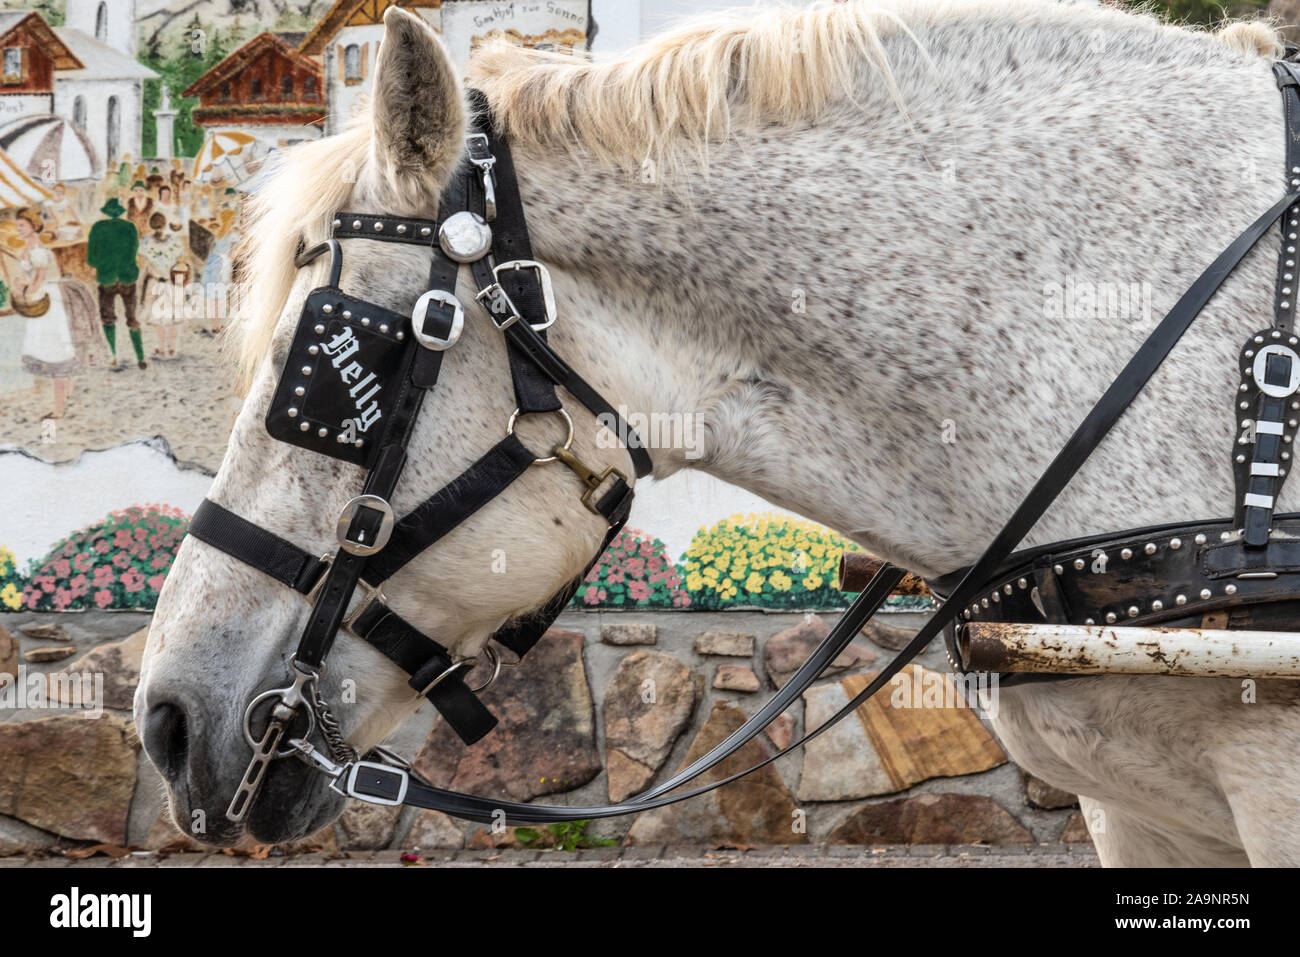 Nelly, harnessed for horse-drawn carriage rides, in the Alpine village modeled town of Helen, Georgia in the Blue Ridge Mountains. (USA) Stock Photo